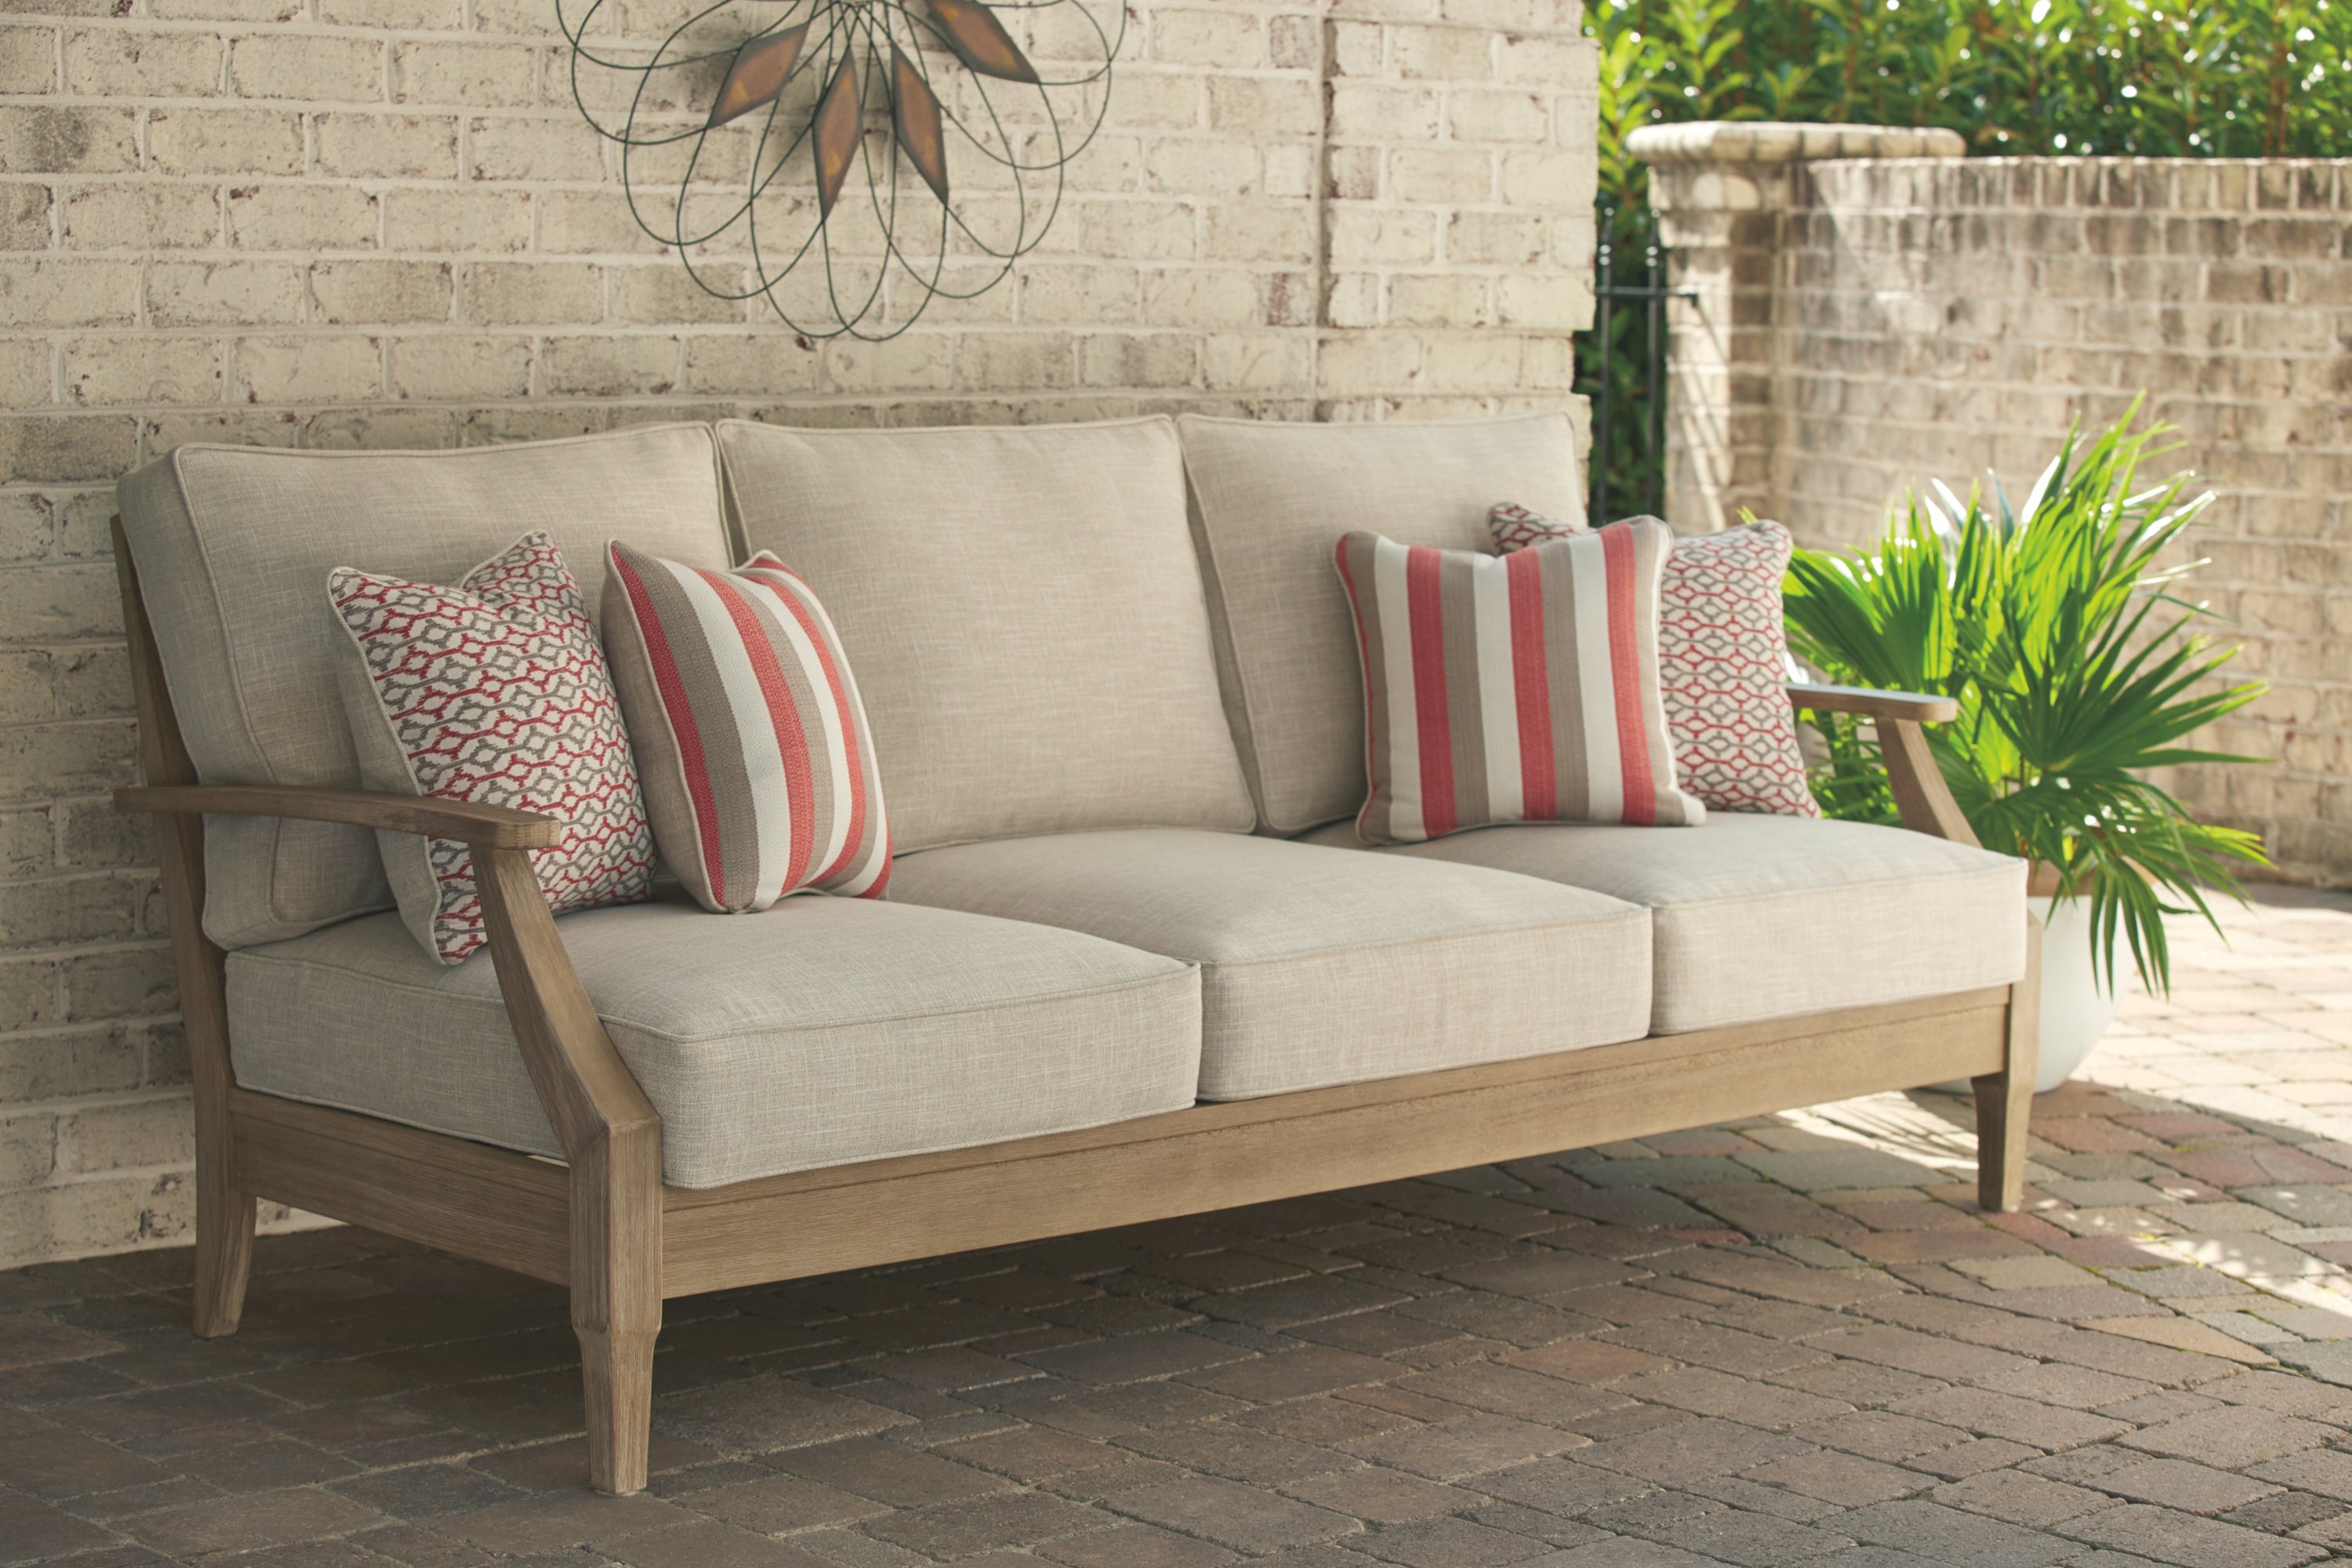 Anguiano Patio Sofa With Cushions Inside Most Current Keever Patio Sofas With Sunbrella Cushions (Gallery 5 of 20)